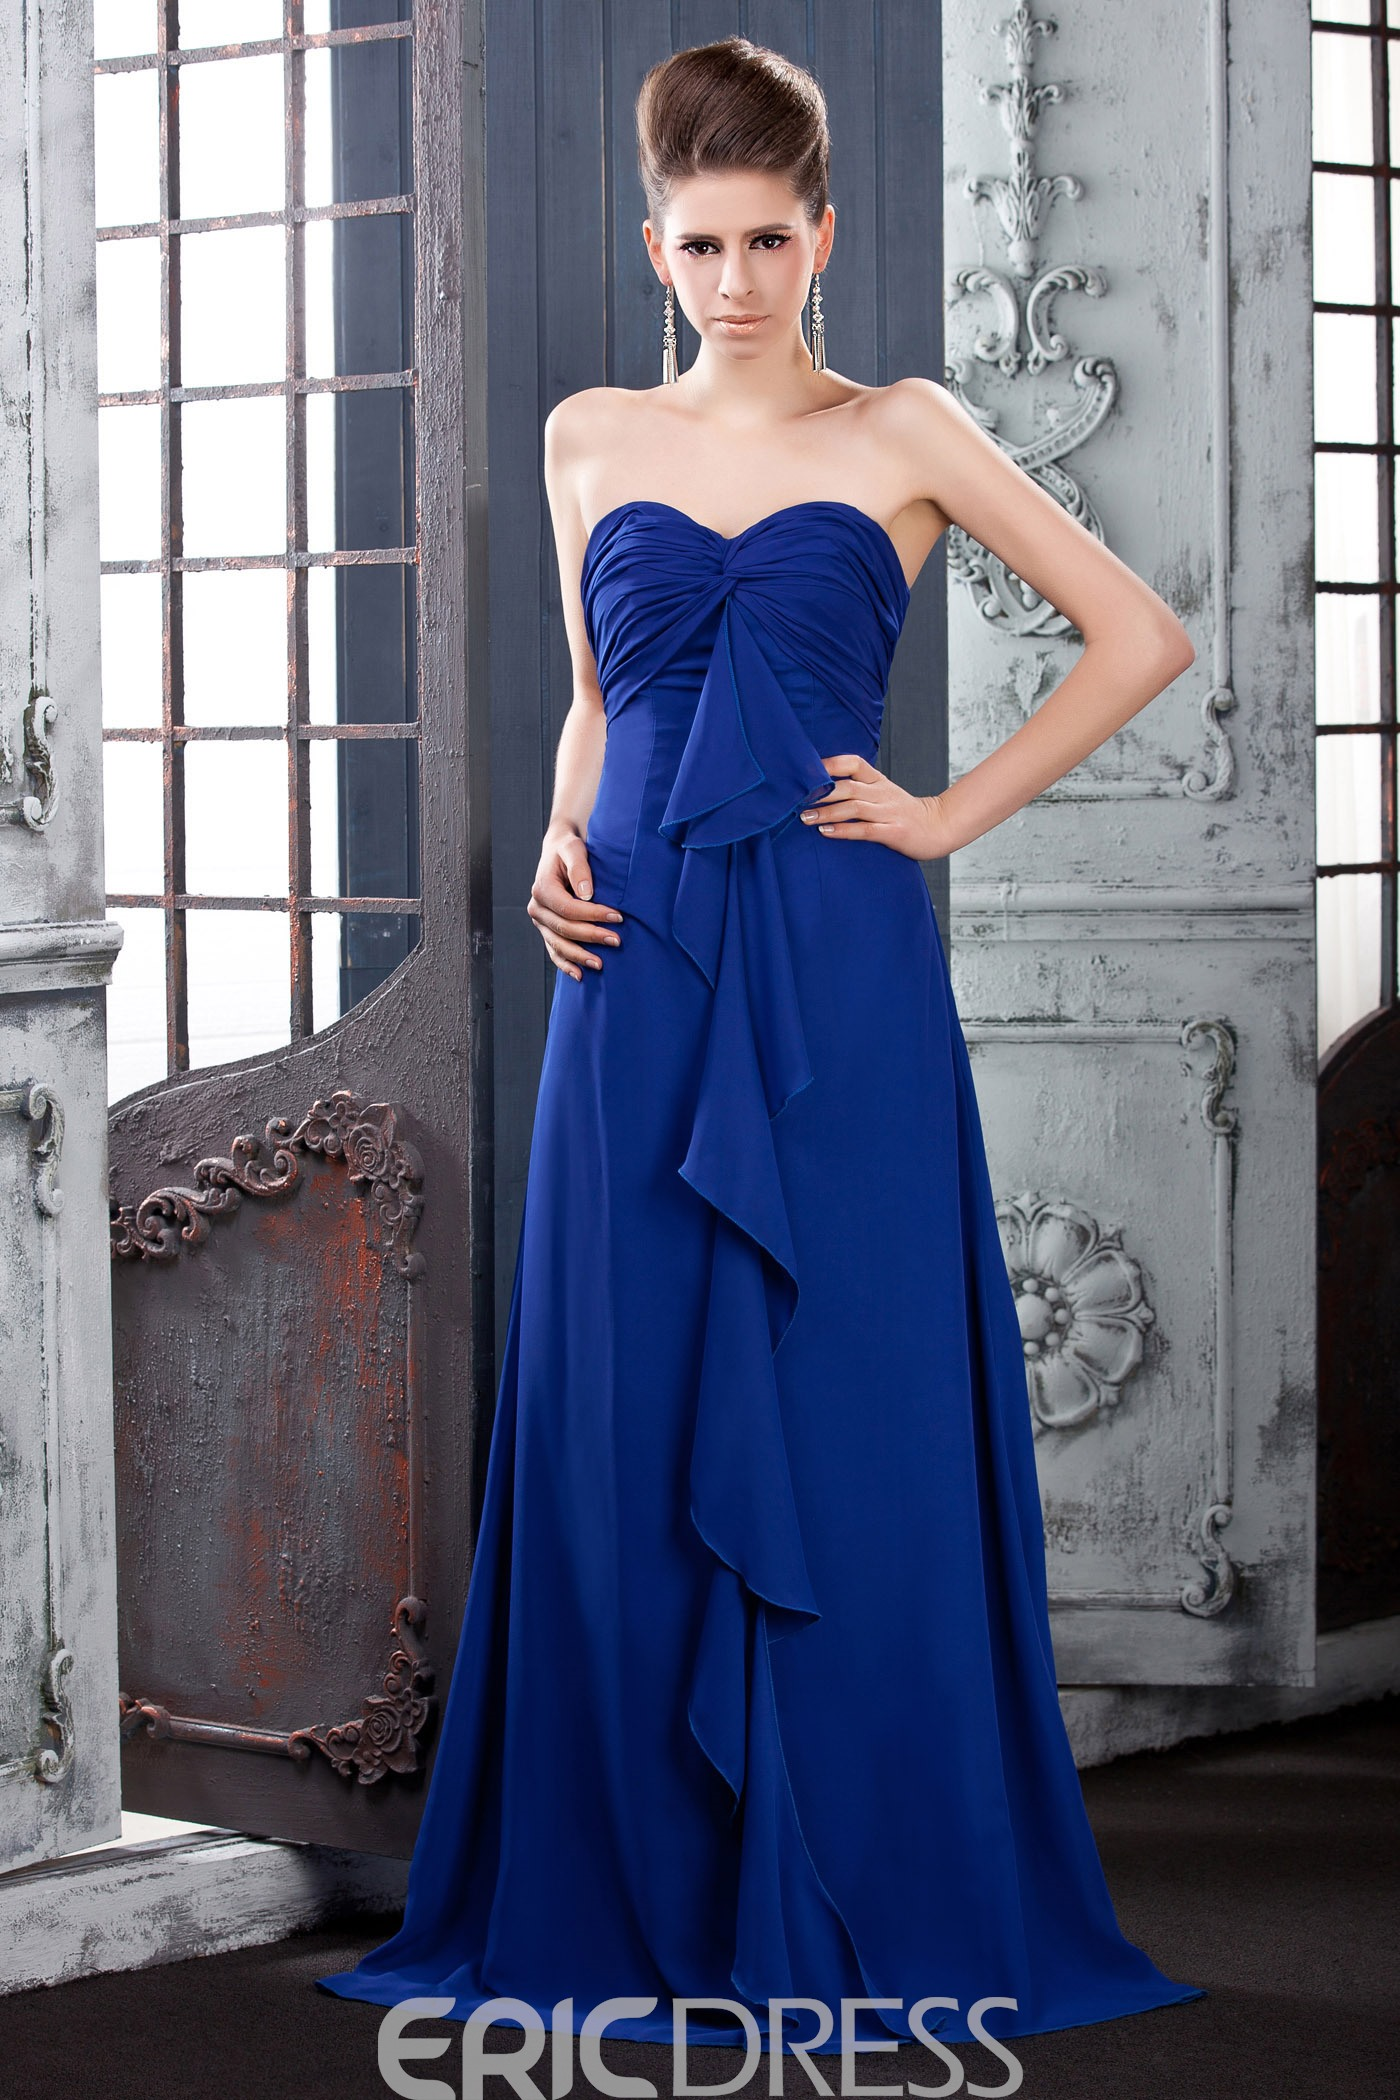 Draped A-Line Sweetheart Floor-Length Bridesmaid Dress